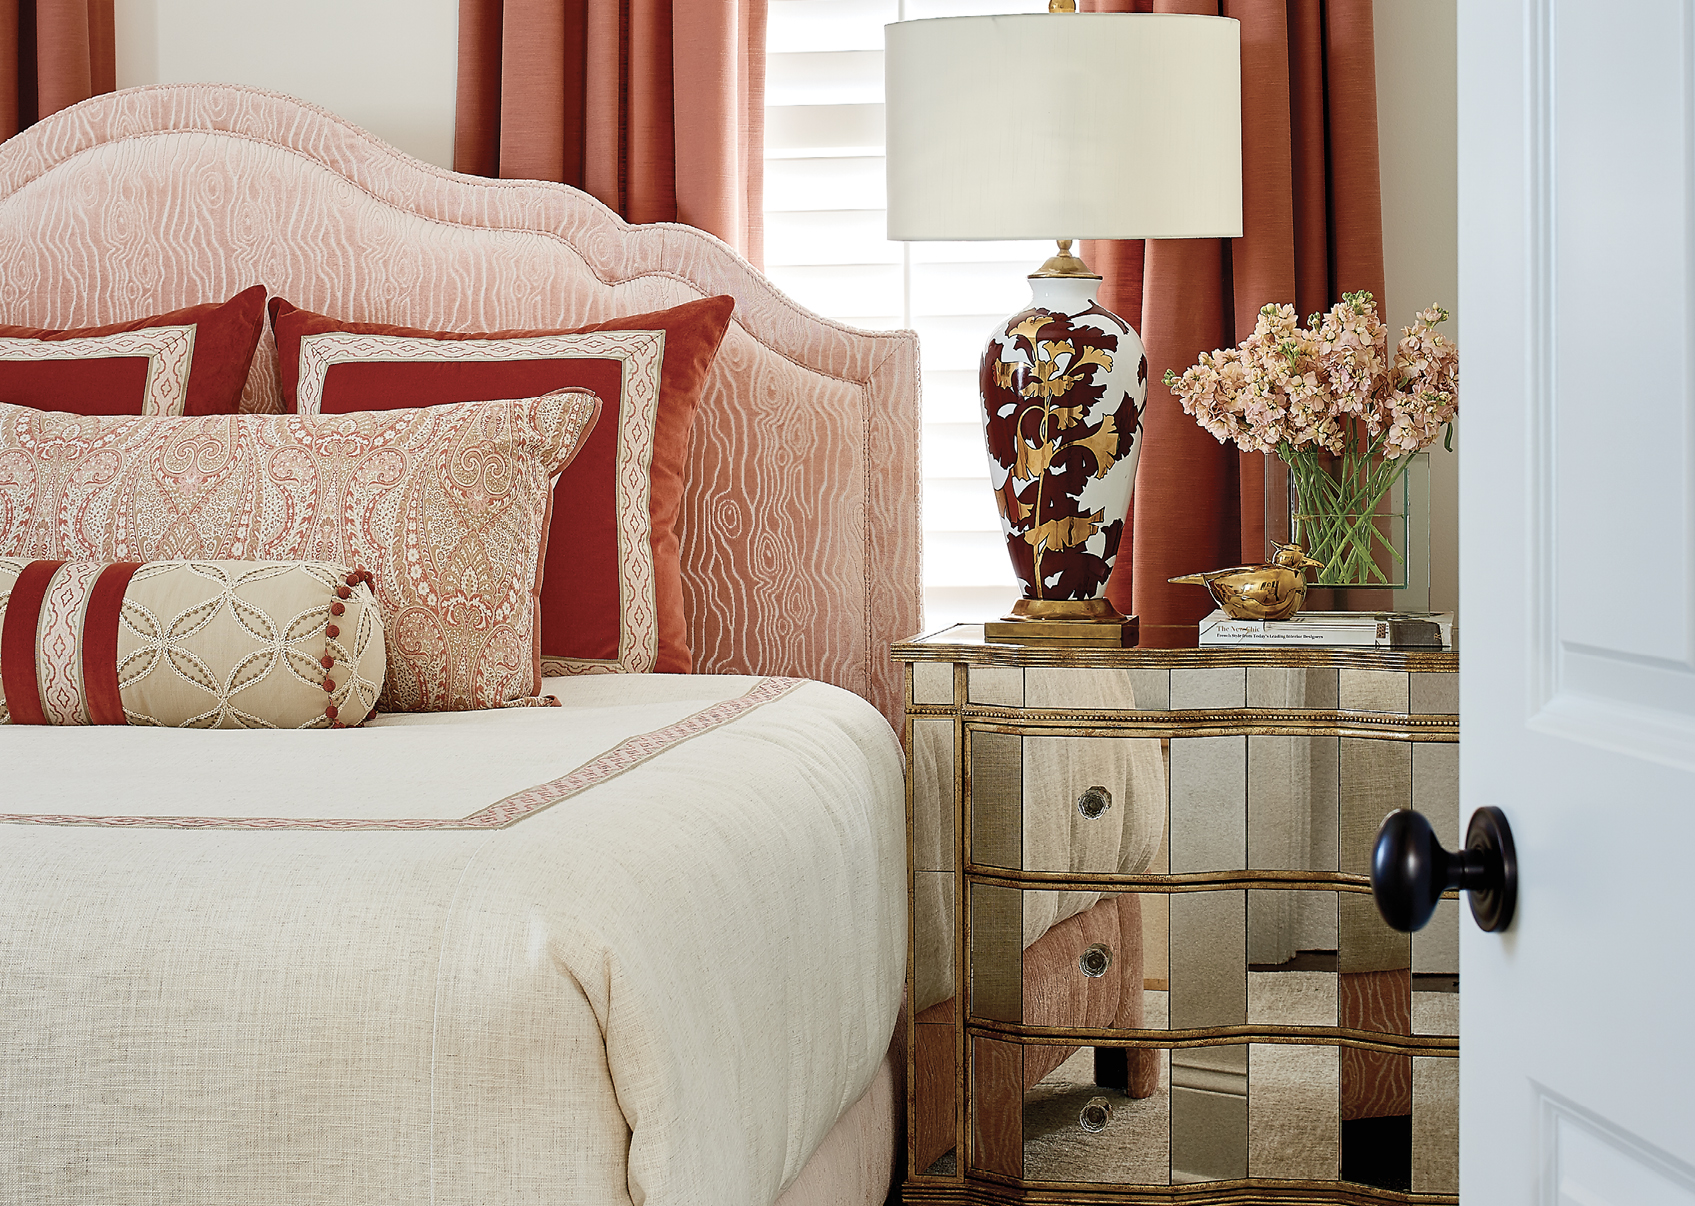 In contrast, the guest bedroom is a cacophony of cheerful colors, with deep peach drapes, a mirrored antique nightstand, and an elegant gold and crimson lamp from Currey and Company.